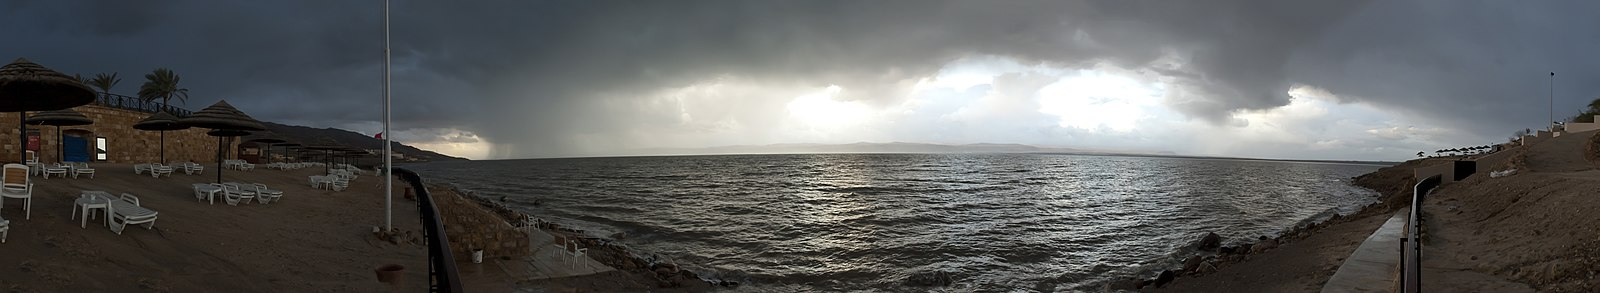 Panorama of the Dead Sea from the Mövenpick Resort, Jordan.